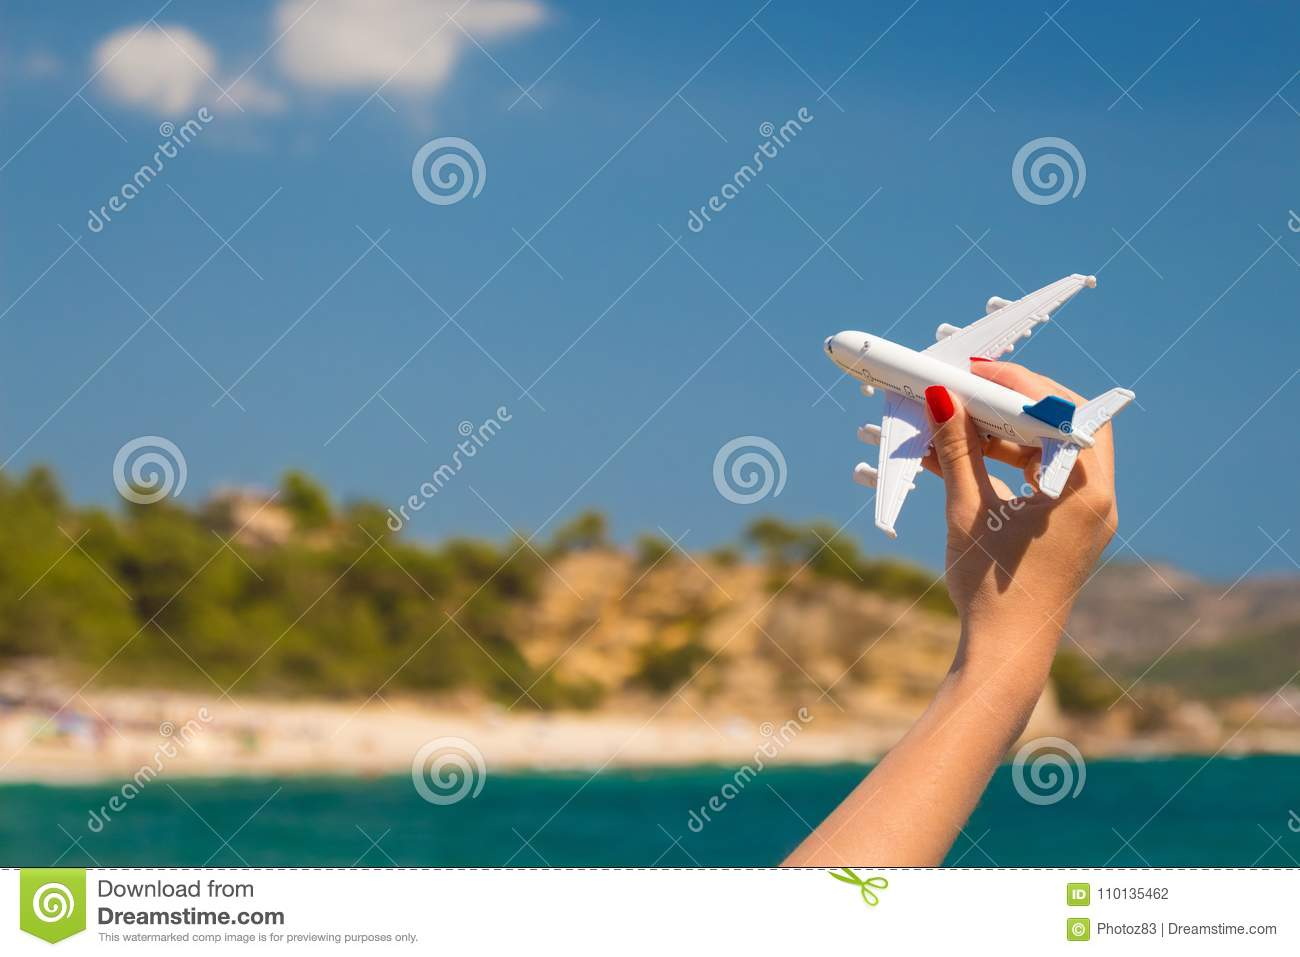 Female hand holding airplane toy at the beach